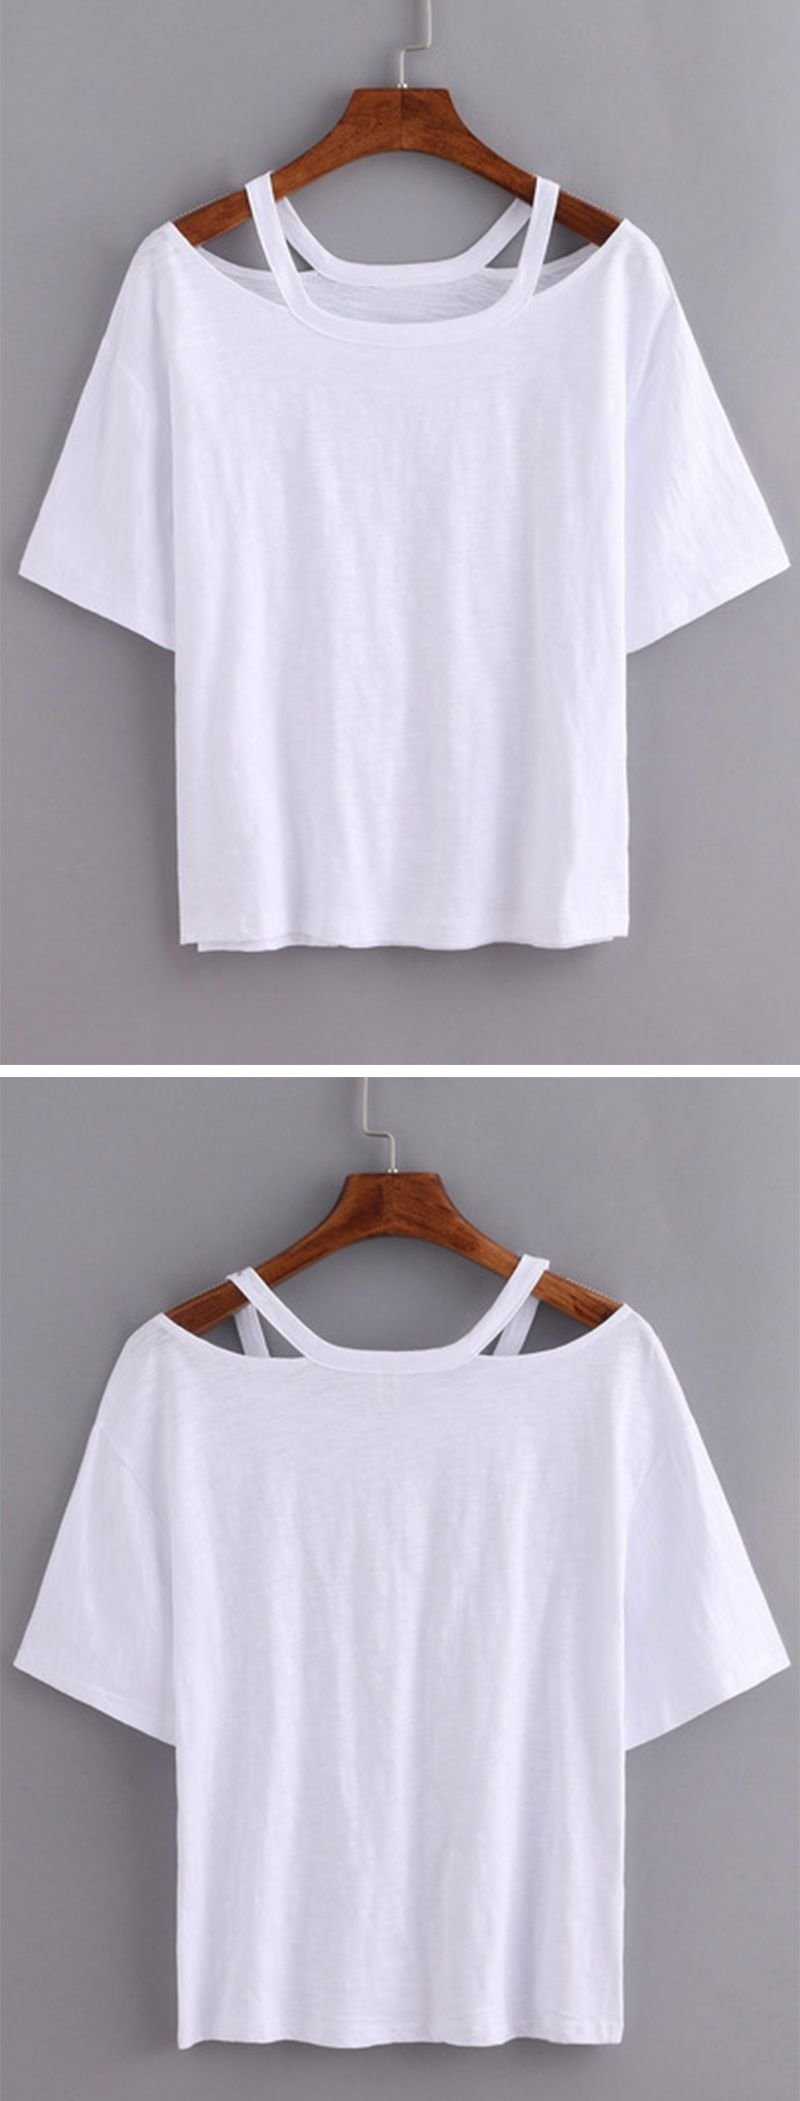 10 Lovable Creative T Shirt Cutting Ideas cutout loose fit white t shirt with 3 from jdzigner www jdzigner 2020